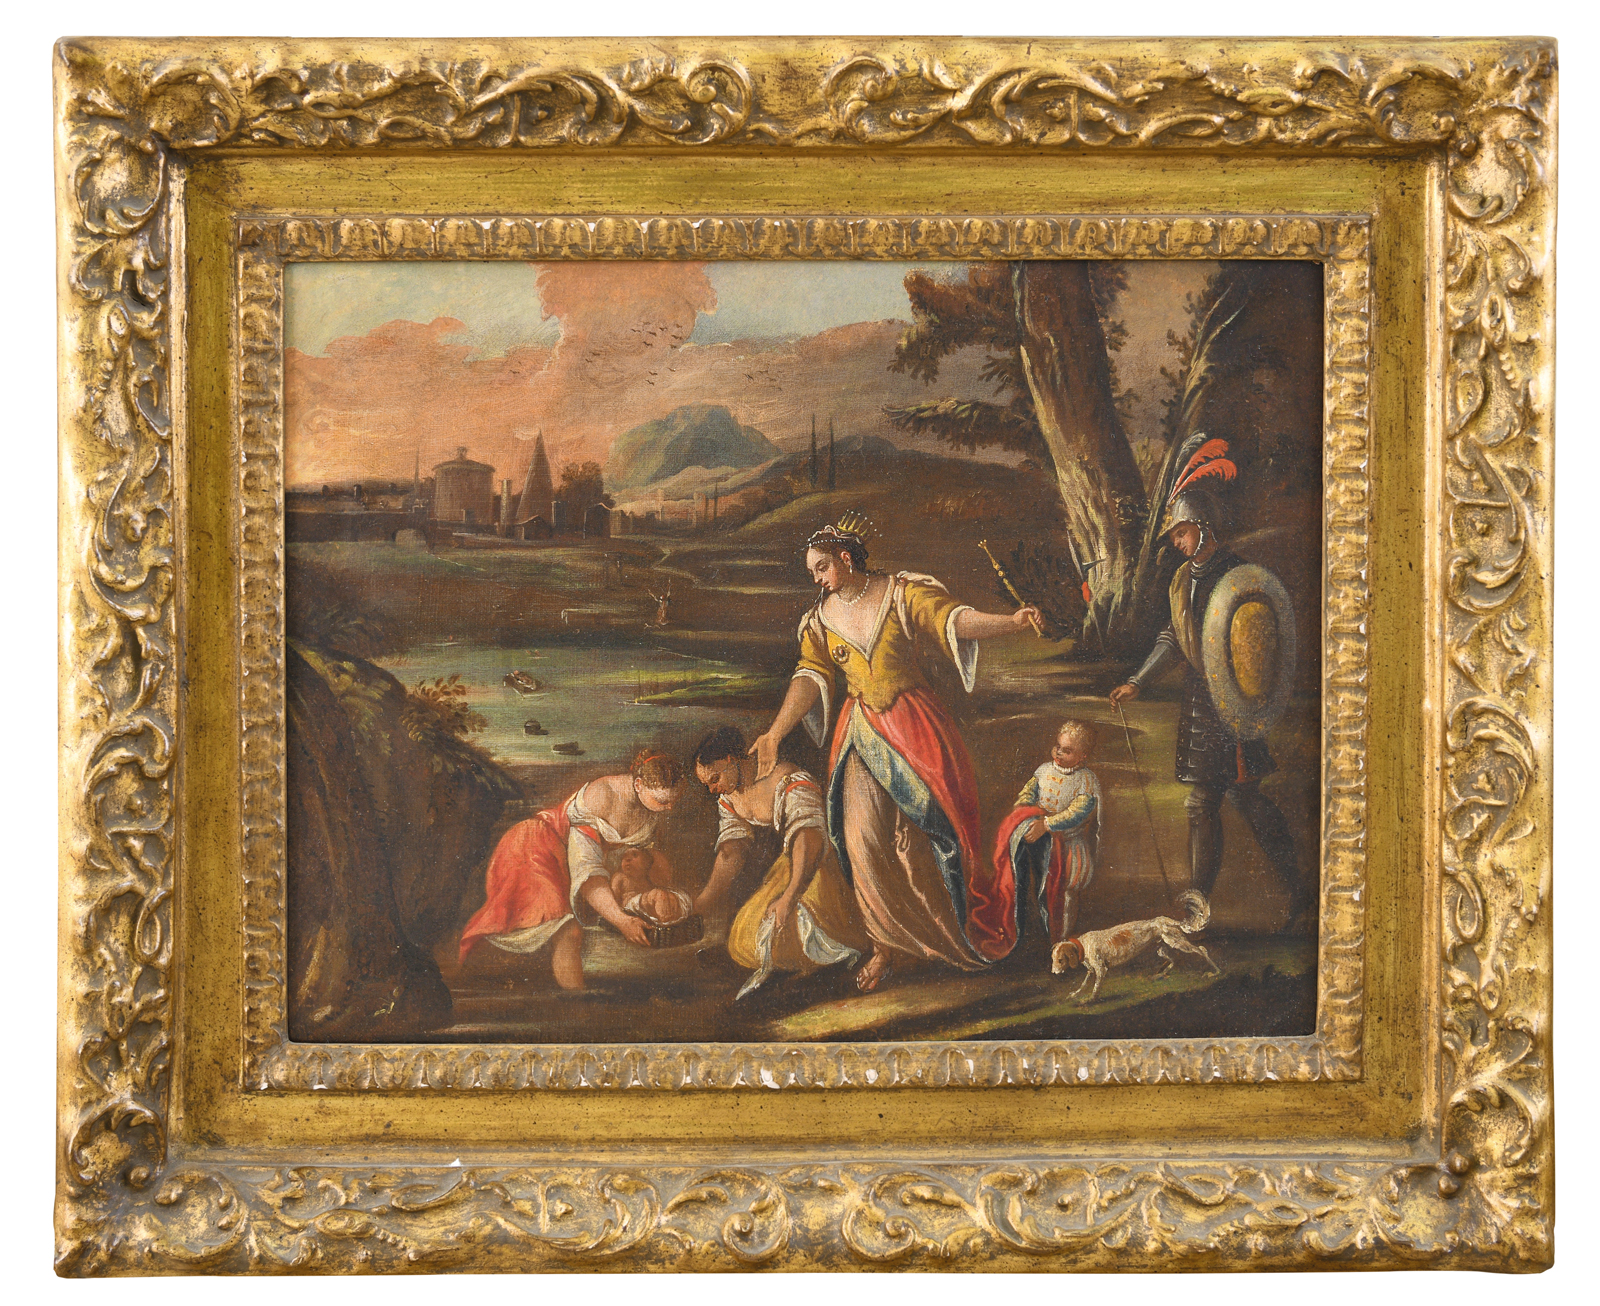 Lot 24 - PITTORE DEL XVII SECOLO